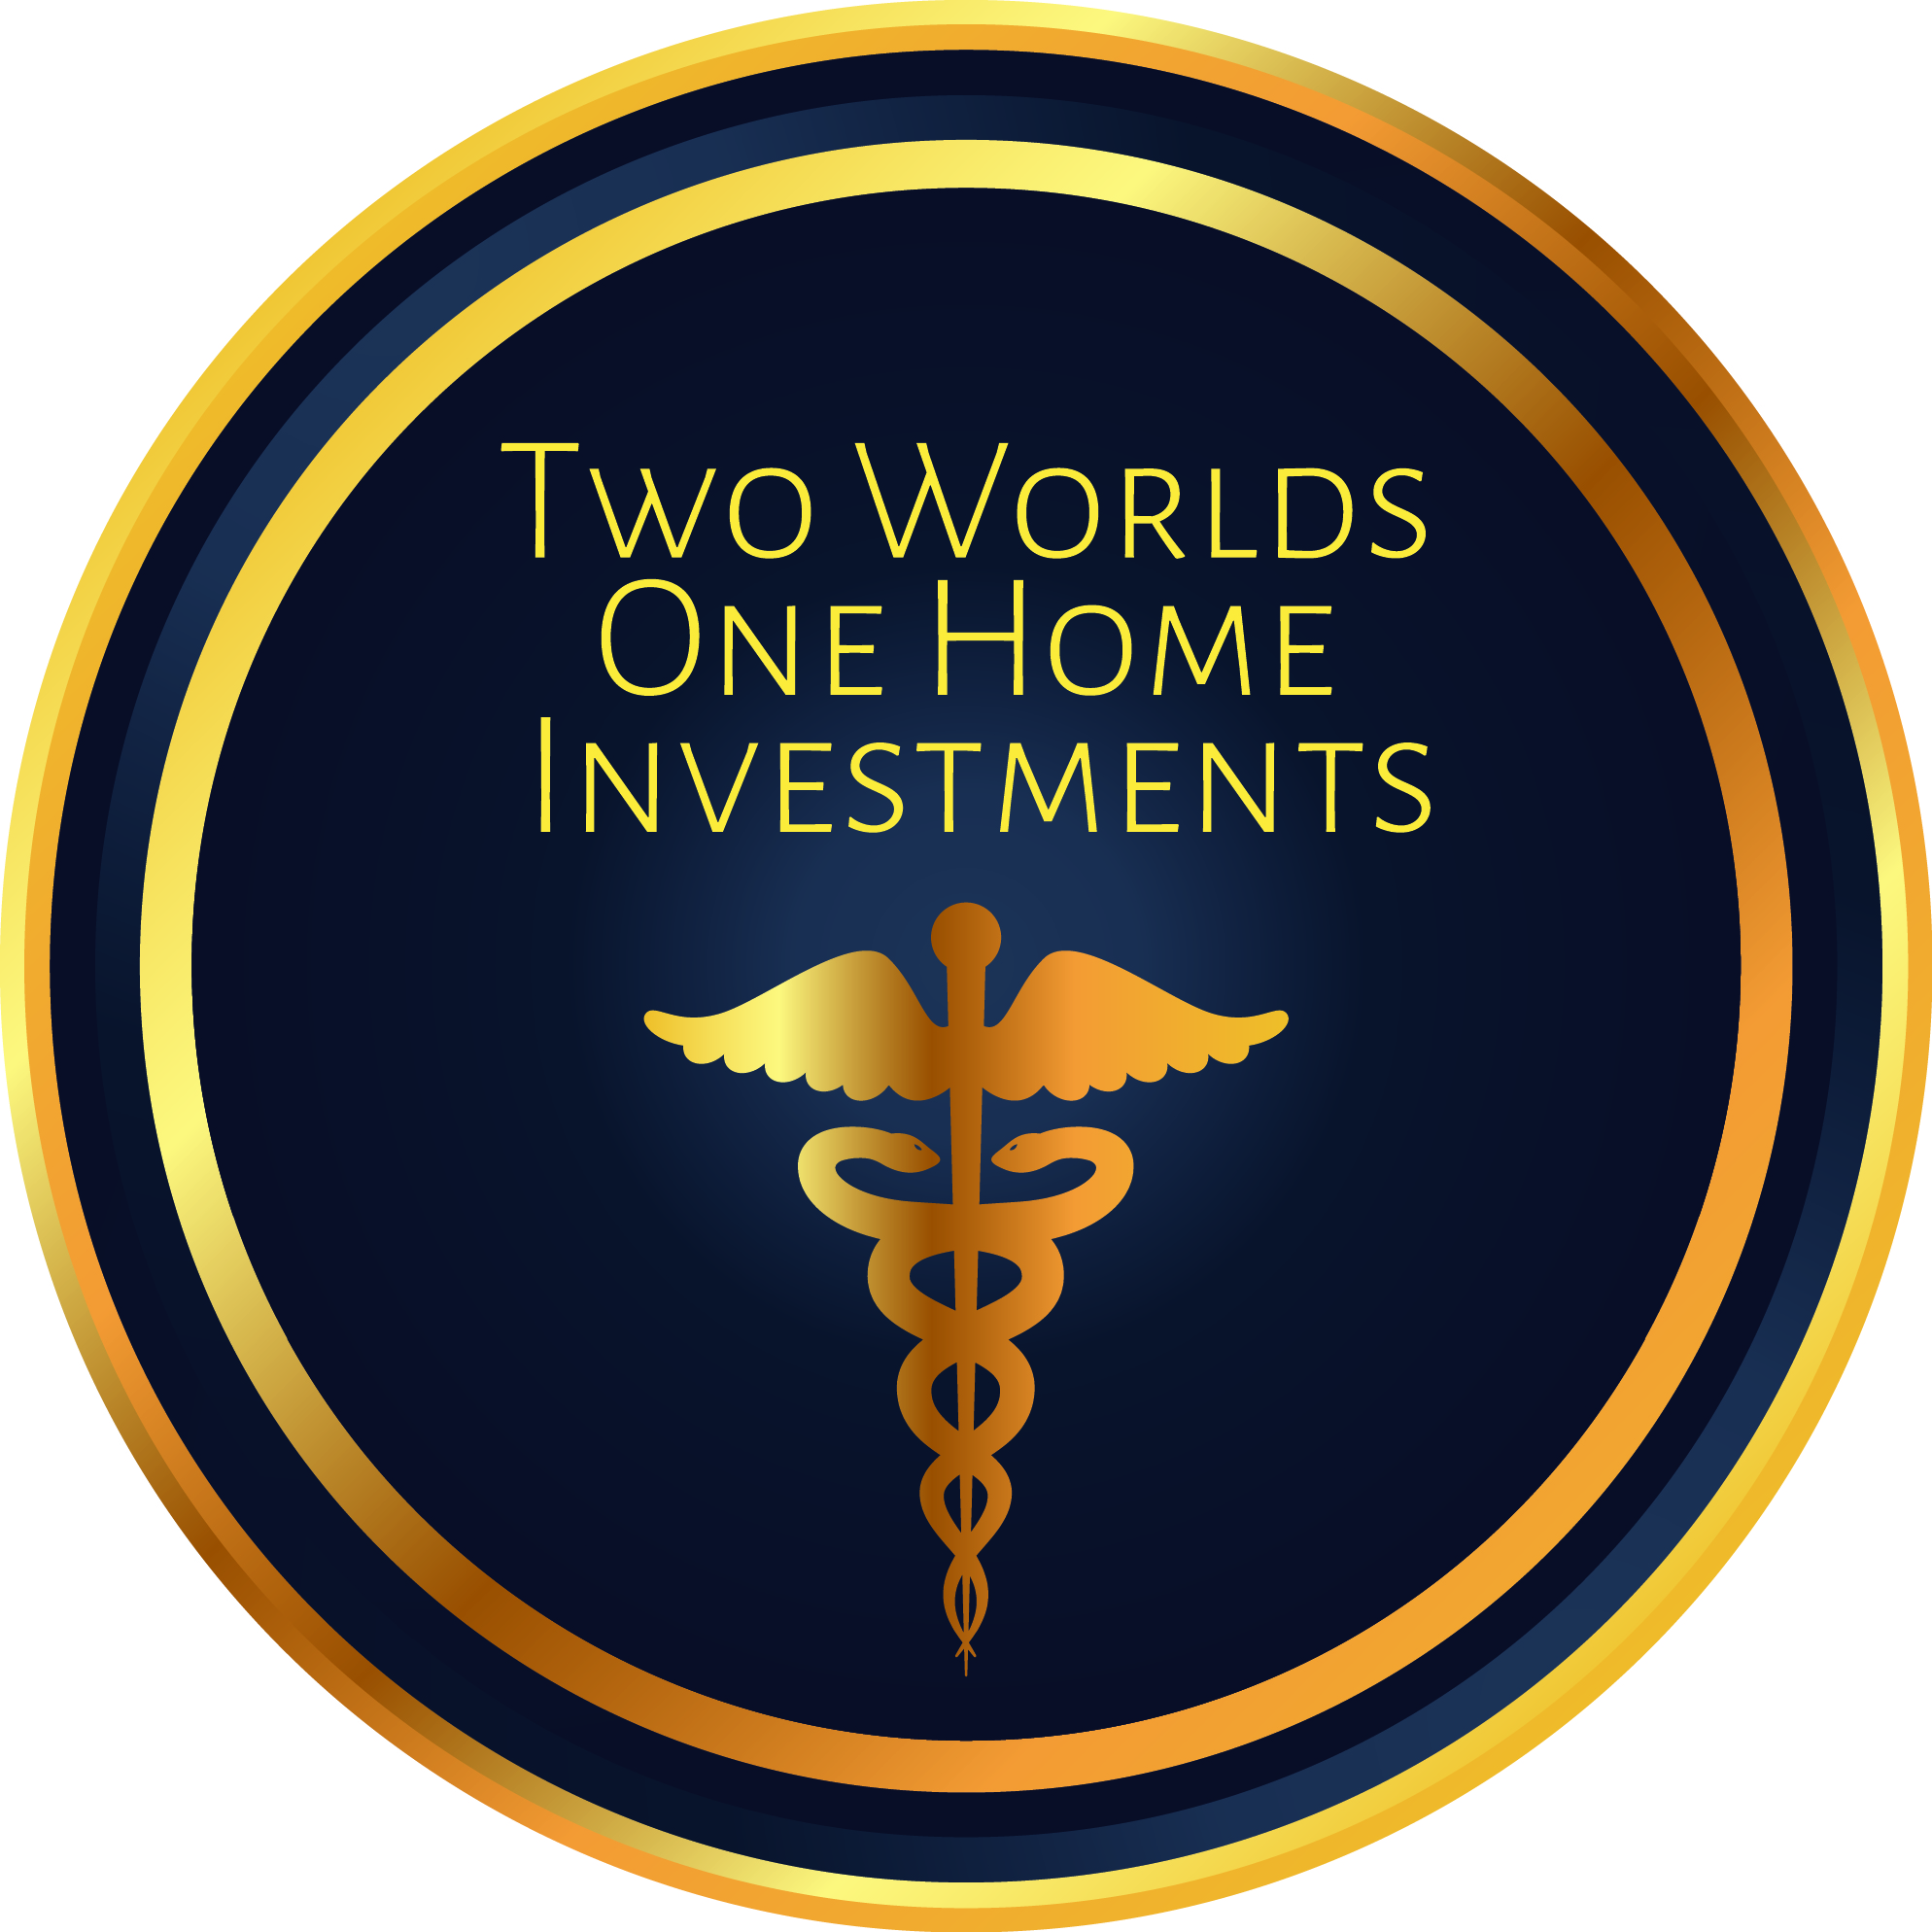 Two Worlds One Home Investments Doo